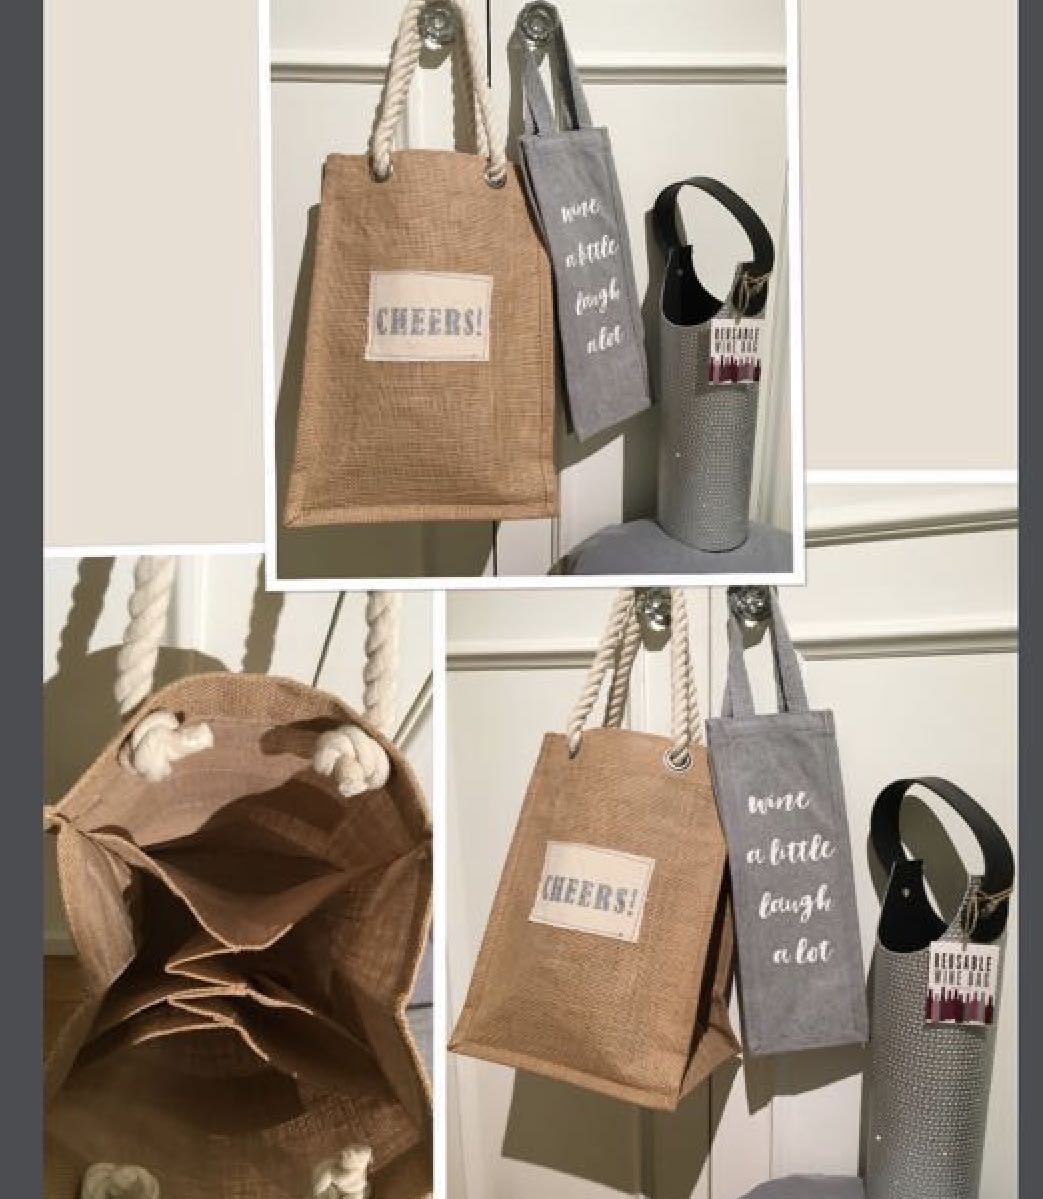 ***3 BRAND NEW WINE BAGS ONLY SOLD AS A SET OF 3*** *In excellent condition...all three bags brand new!!!!